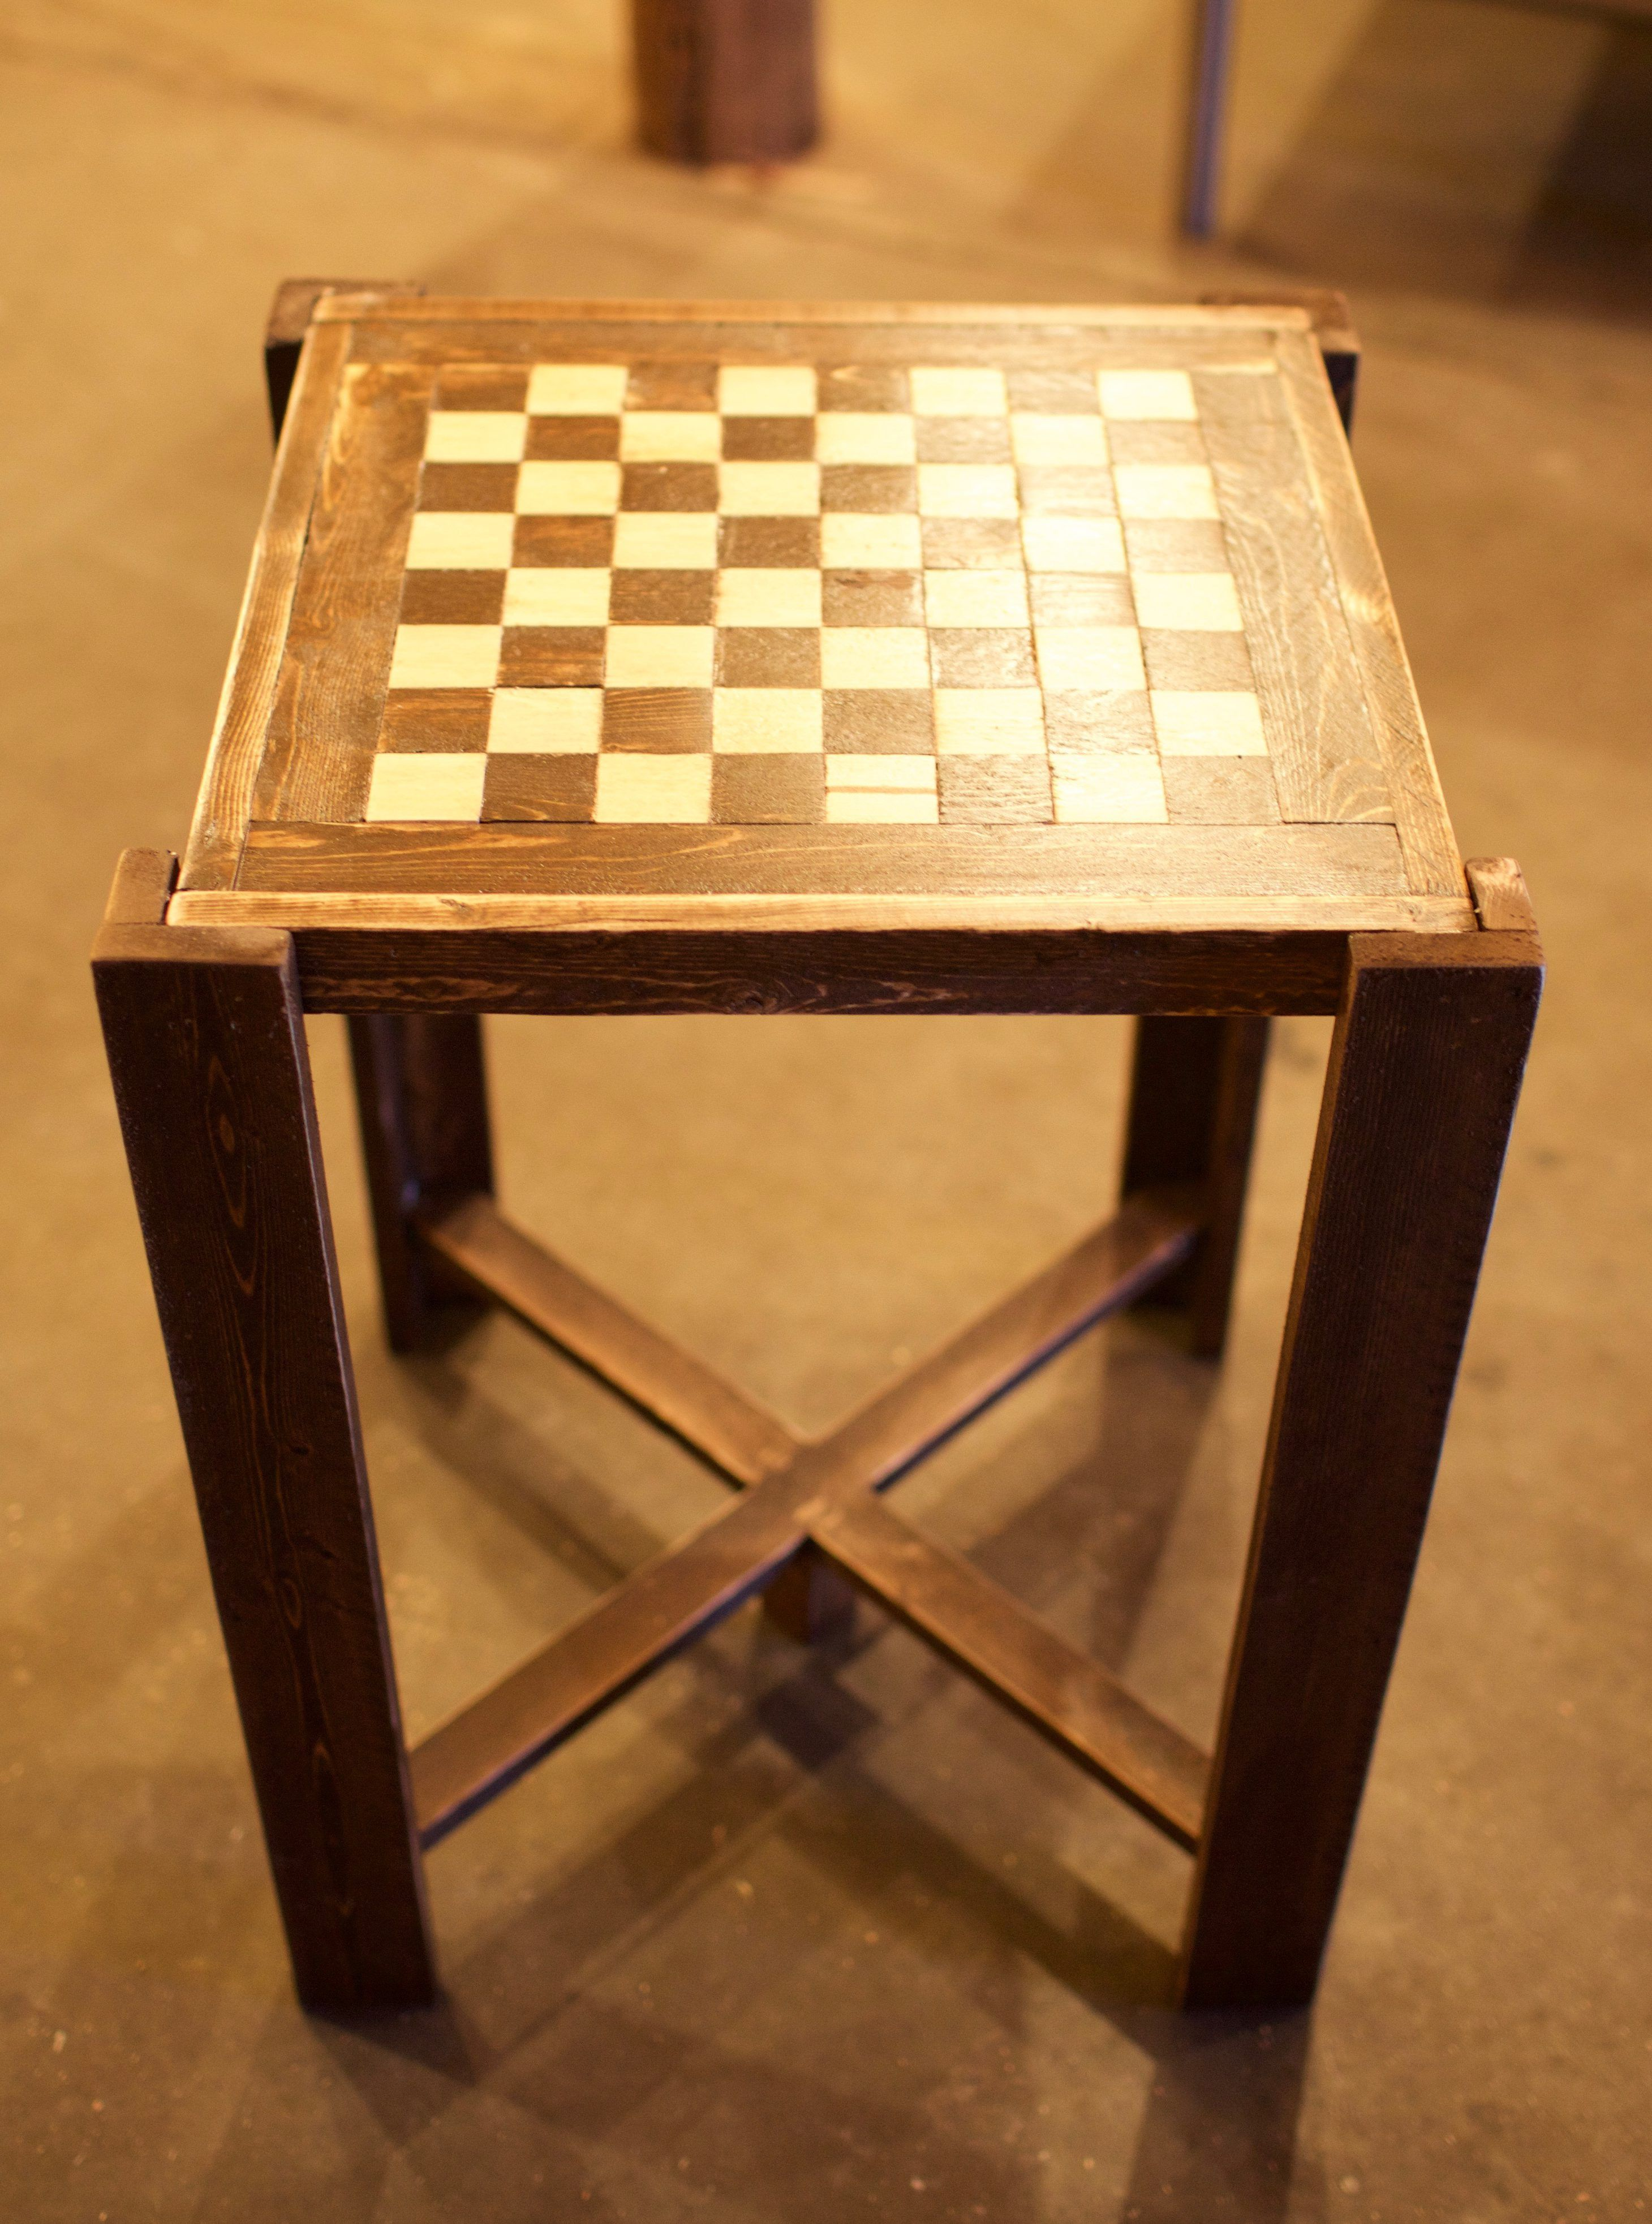 Chess Table Diy Chess Board Table Plans By Sunnyand79 Wood In 2019 Chess